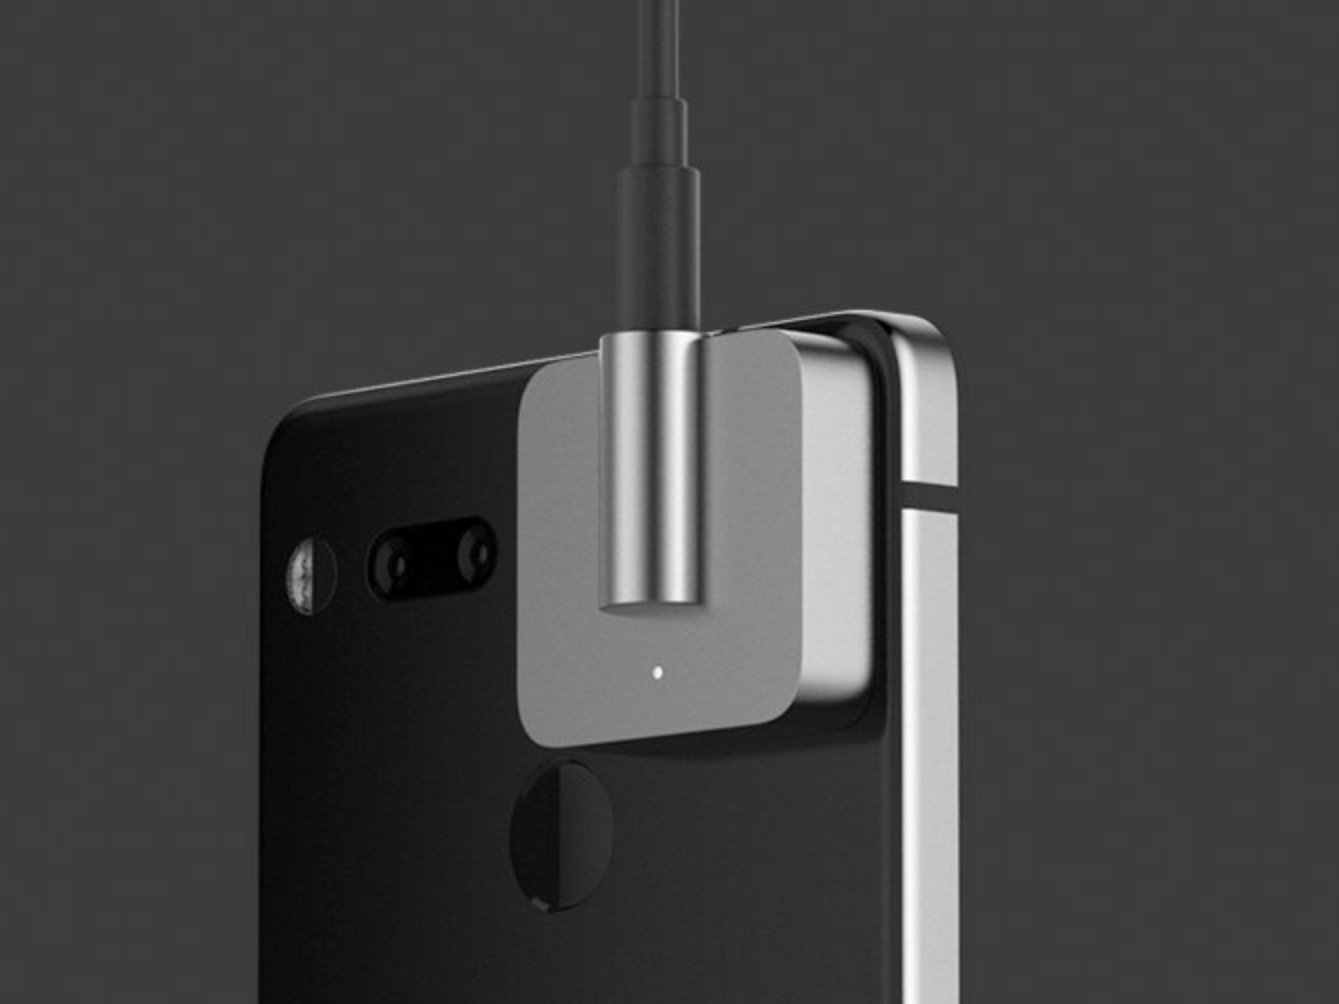 hight resolution of similar to the 360 camera this headphone jack adapter snaps onto the back of the essential phone using its two pin connection system and strong magnets